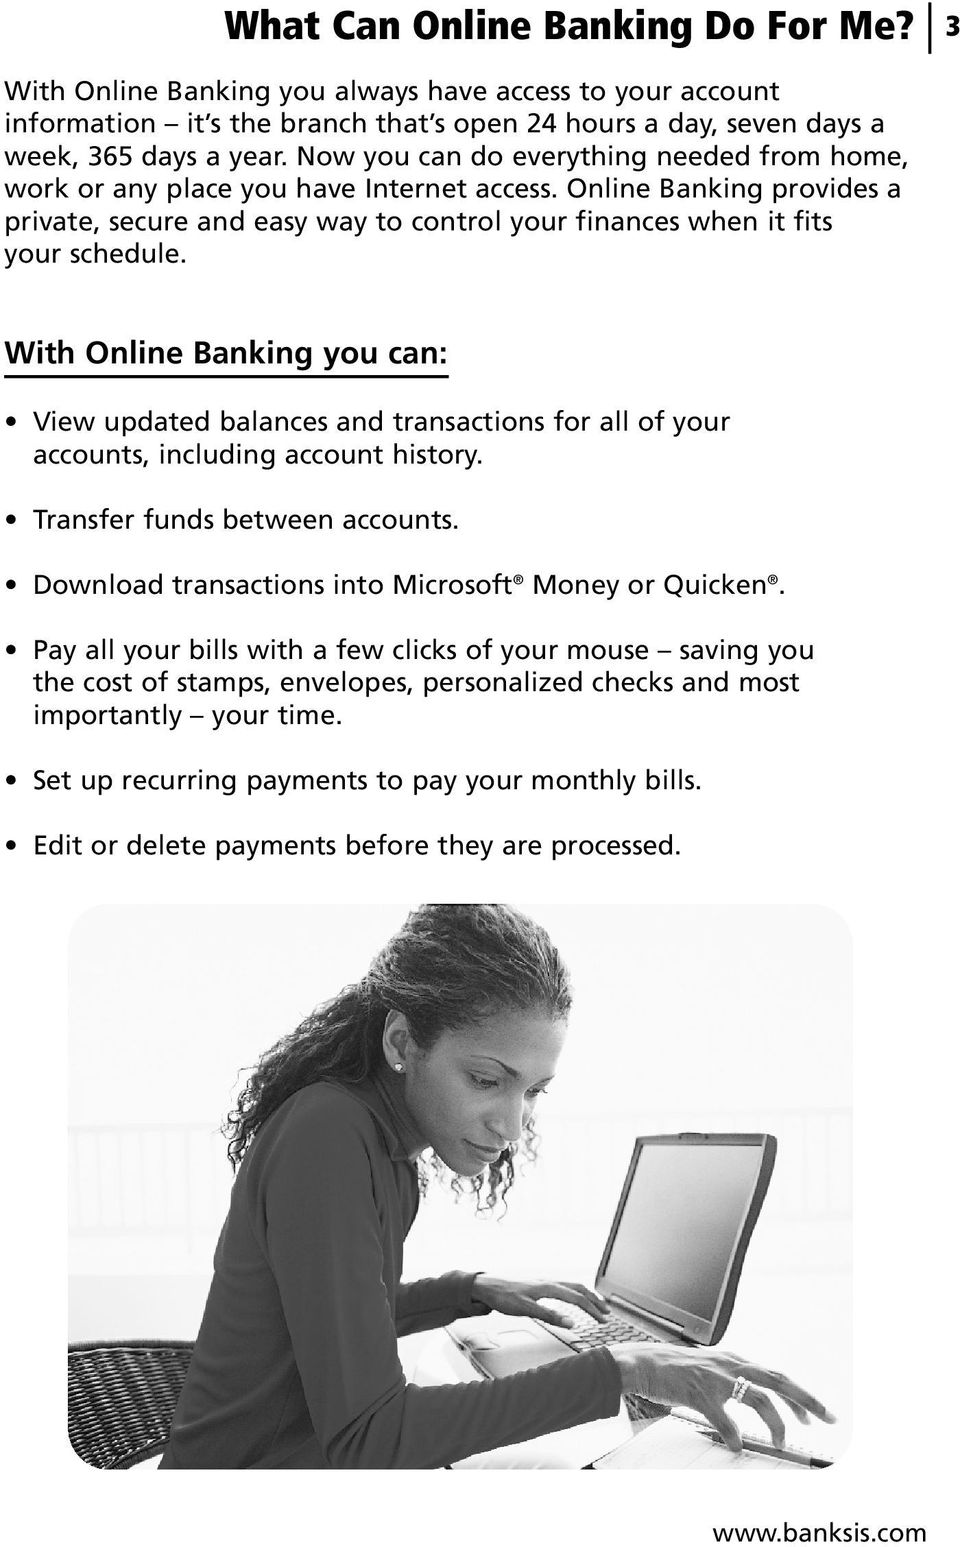 With Online Banking you can: View updated balances and transactions for all of your accounts, including account history. Transfer funds between accounts.